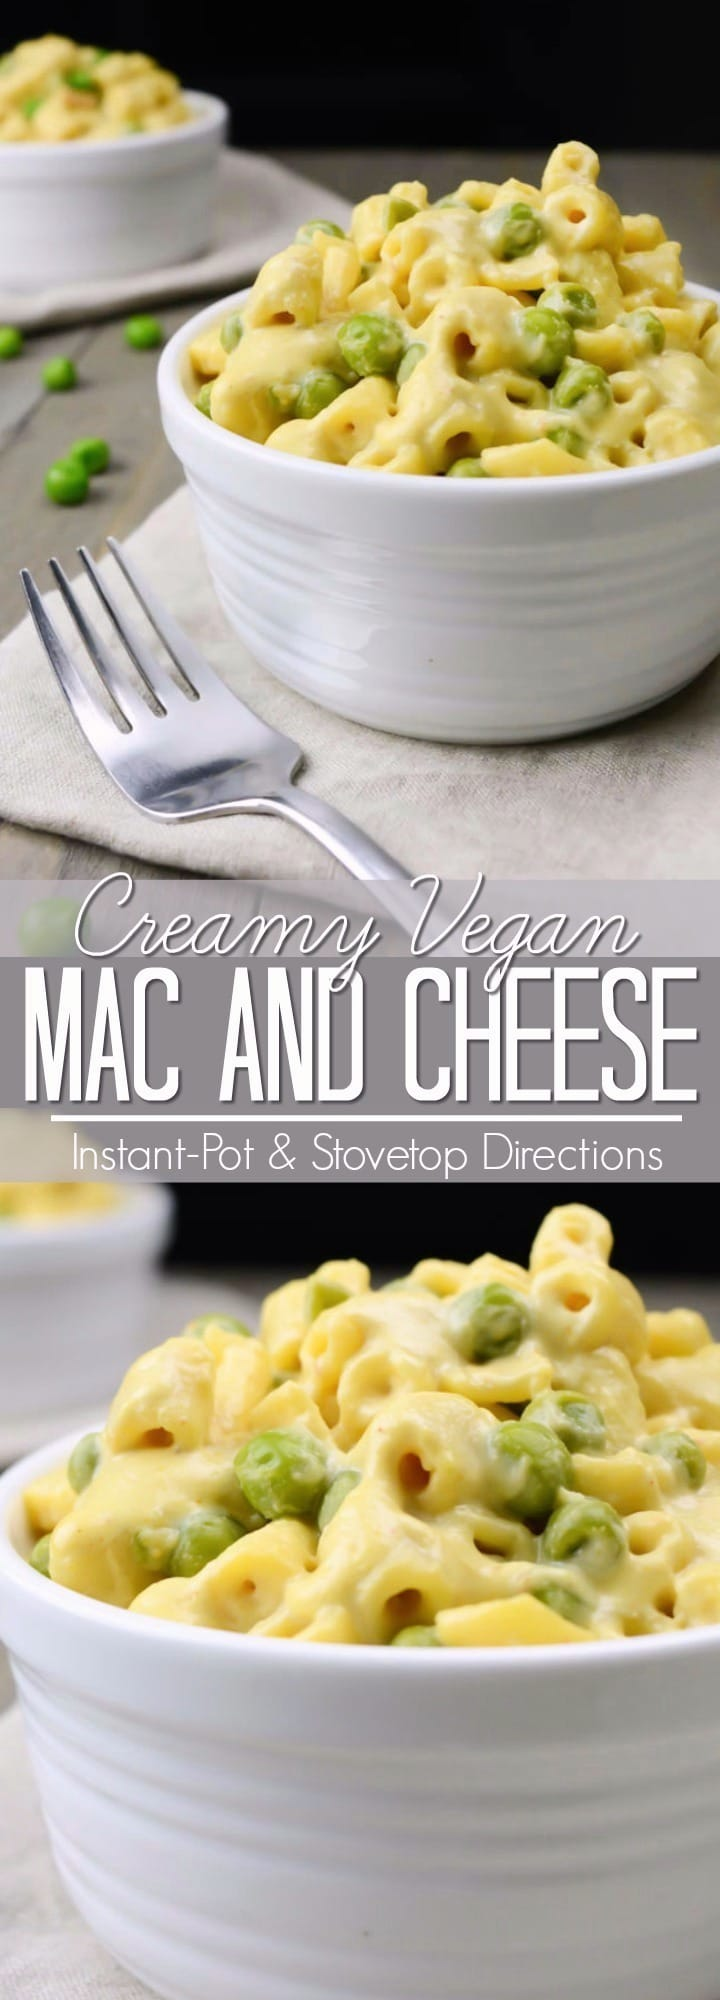 This Vegan Mac and Cheese is so creamy and cheesy!  It's the perfect dairy-free alternative to a classic comfort food.  This one-pot recipe can be made stovetop or in the Instant-Pot.